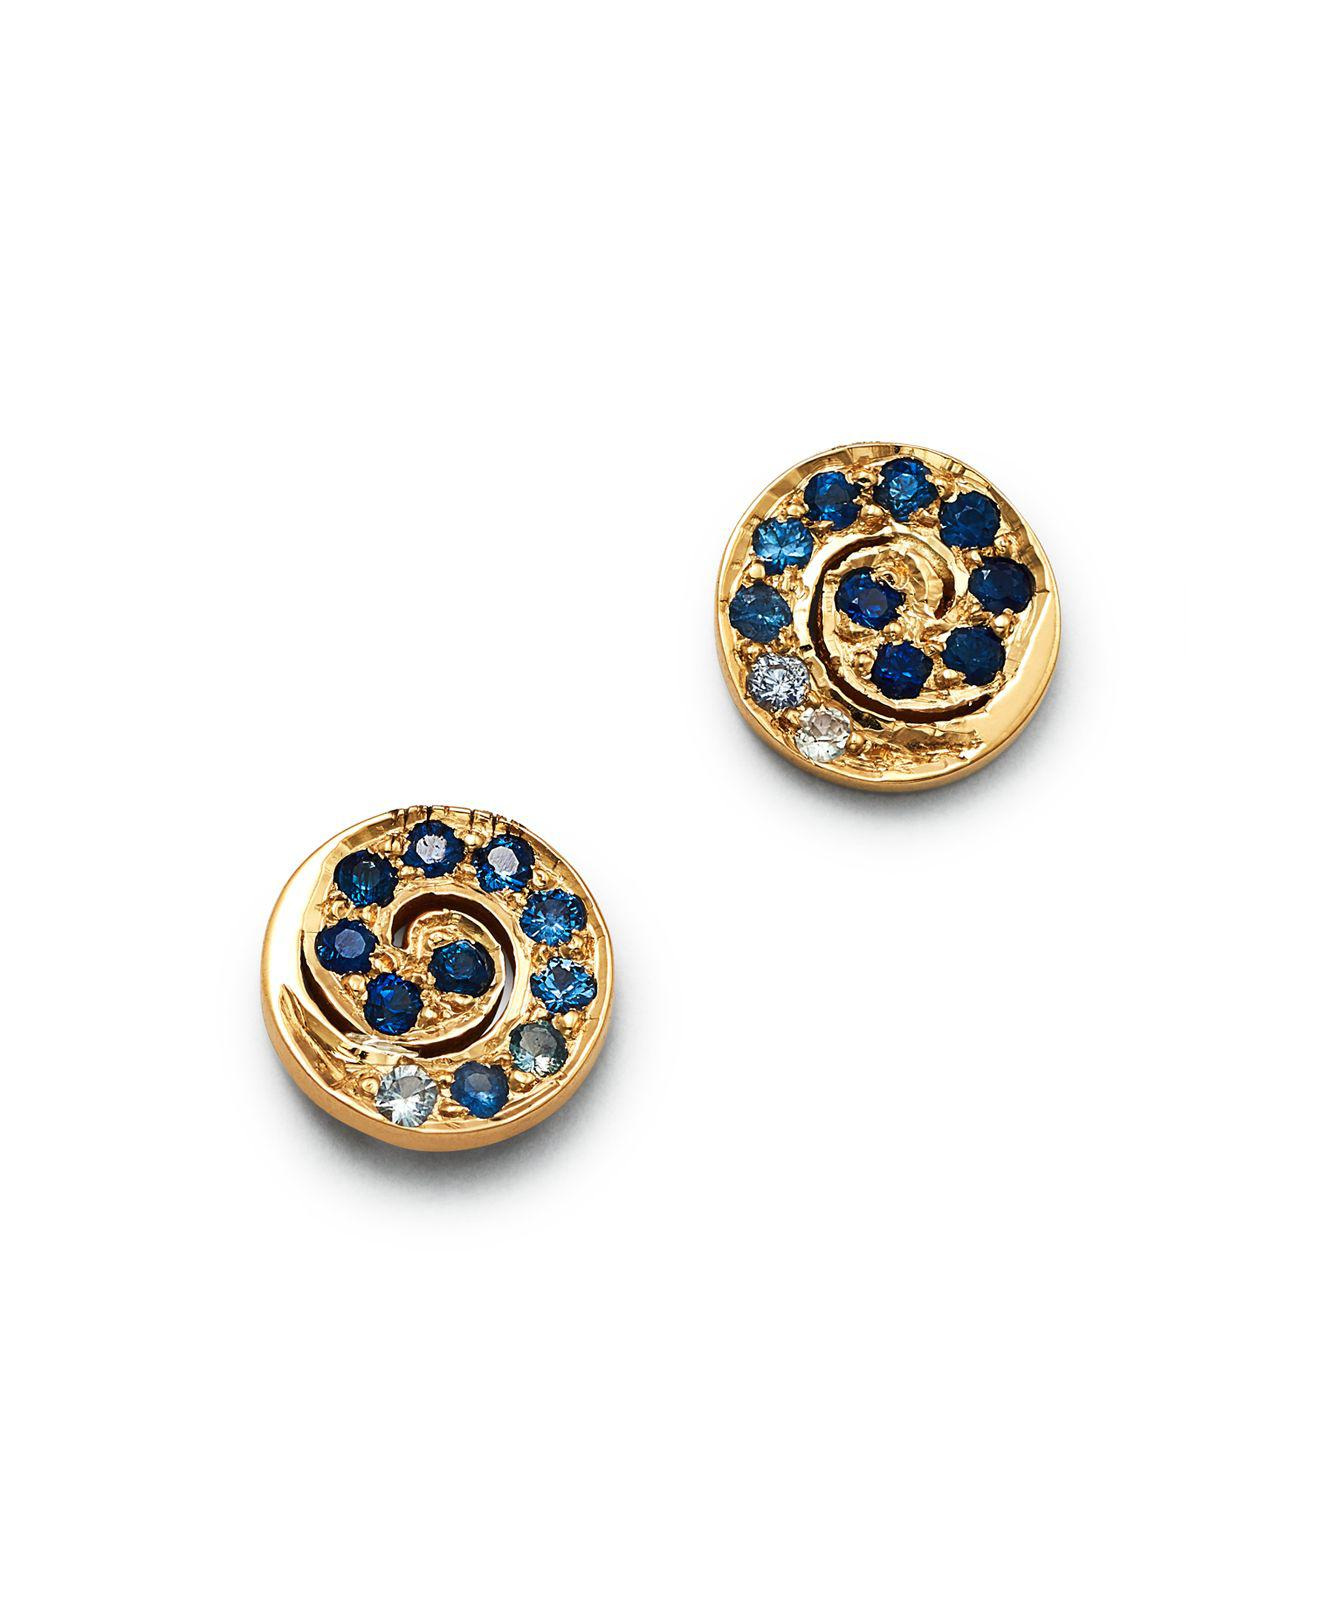 14K Yellow Gold and Sapphire Button Studs She Bee CUE42QLTB